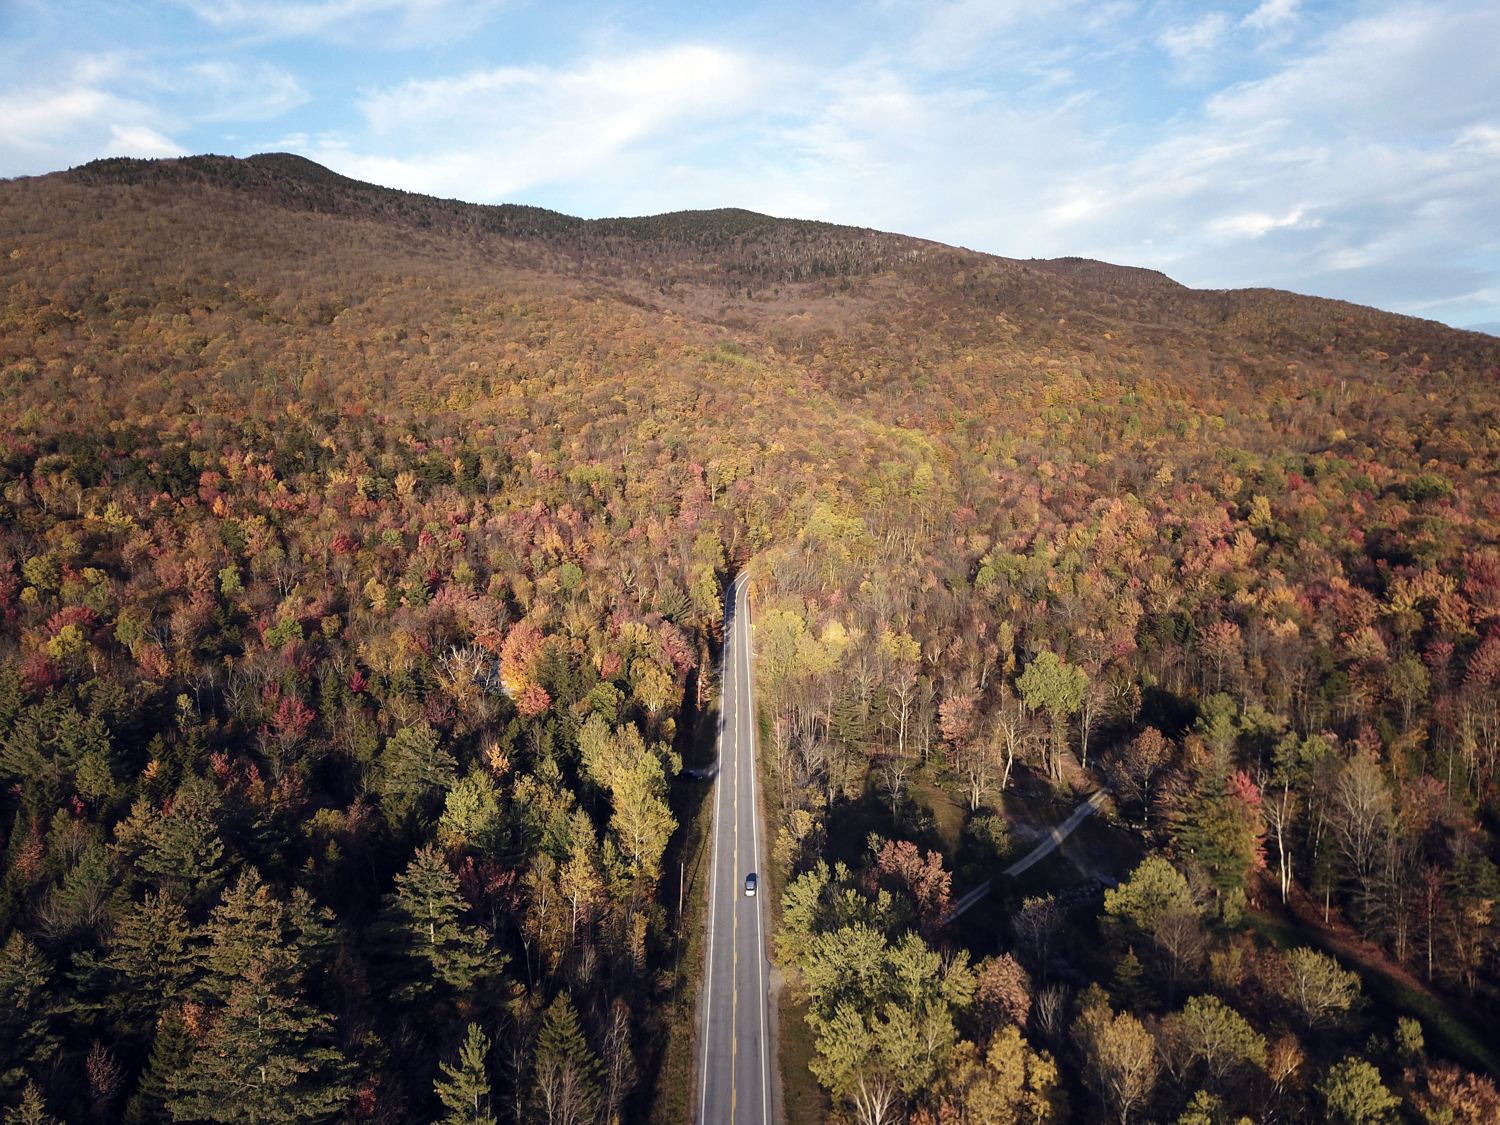 Fall Foliage along Route 73 in Goshen, VT